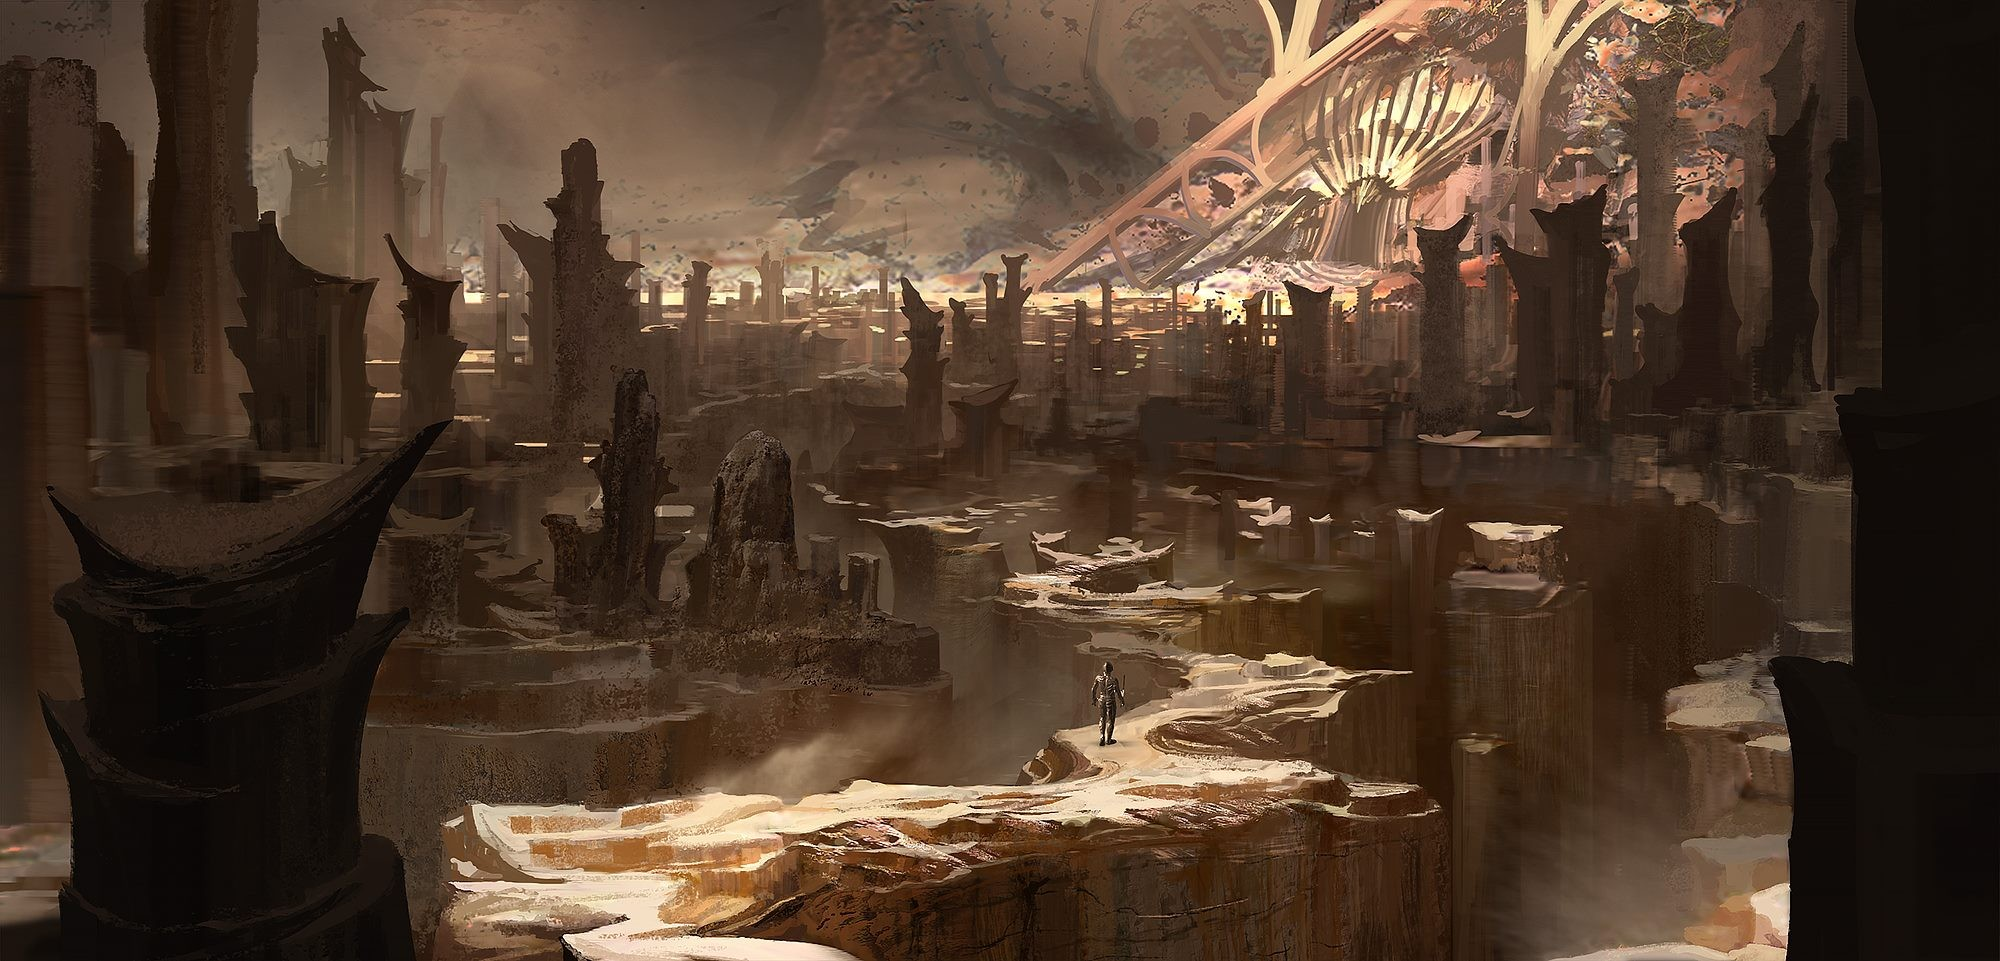 General 2000x961 digital art fantasy art valley futuristic city men rock formation